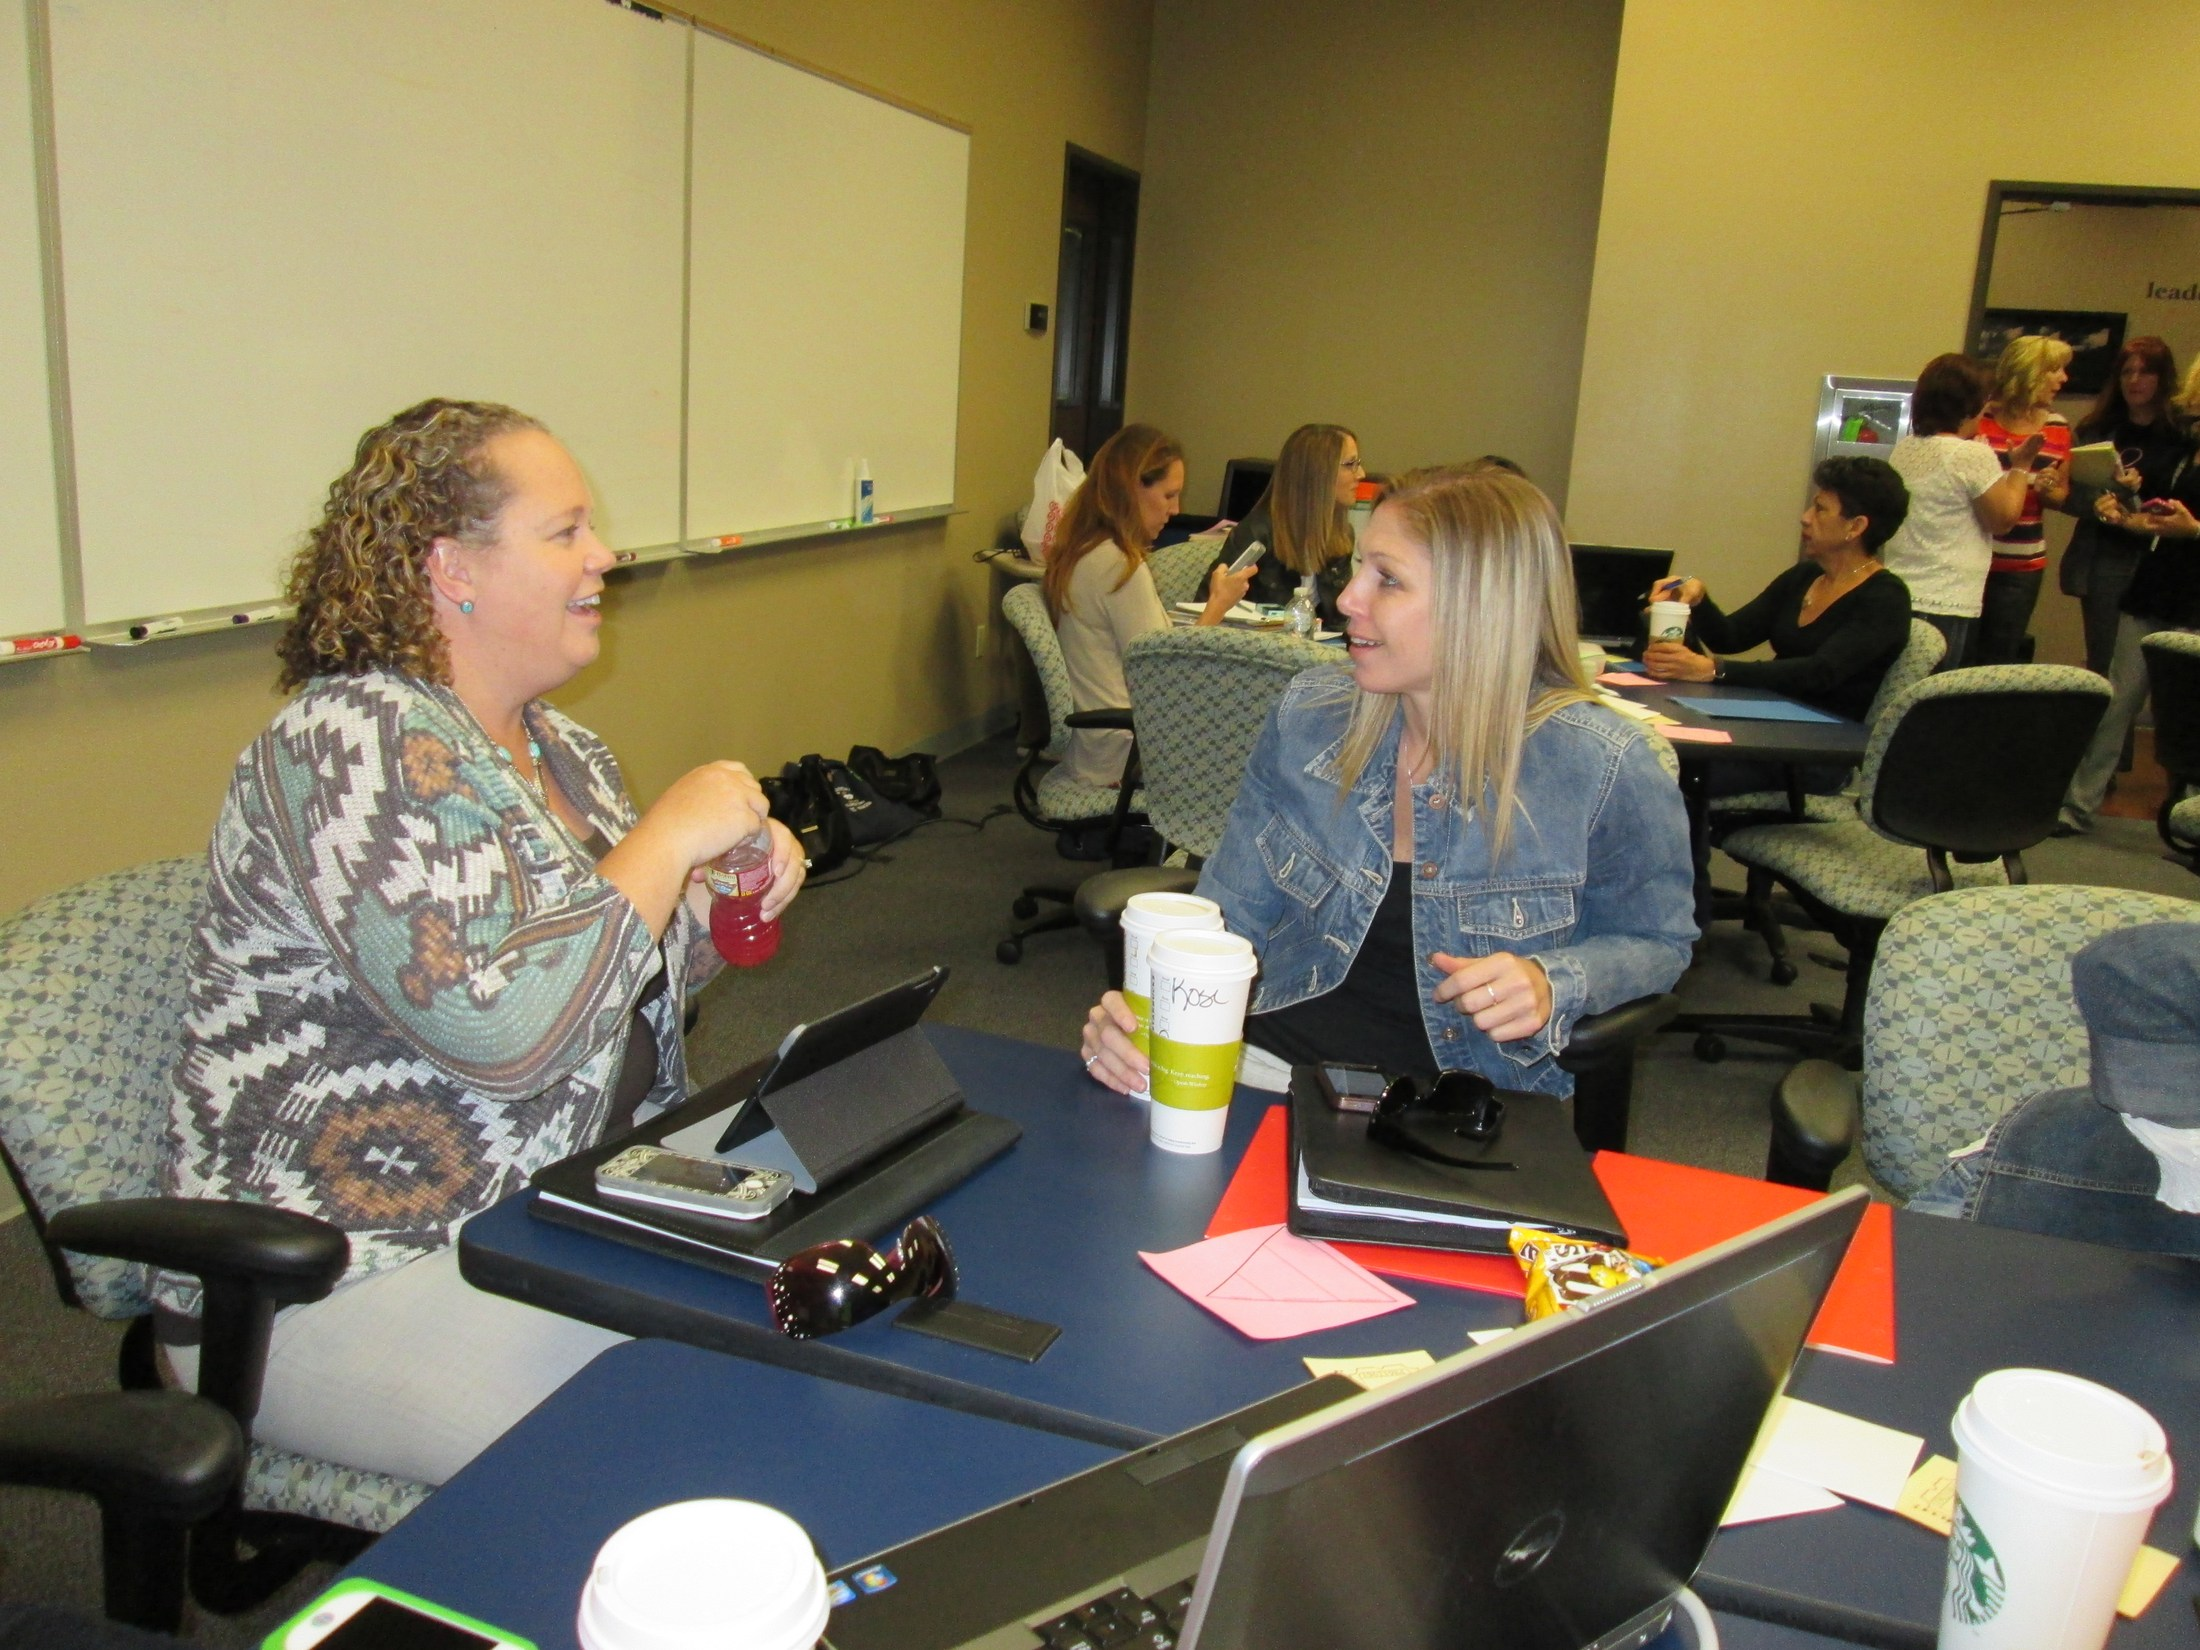 Teachers discuss the training in which they are participating.